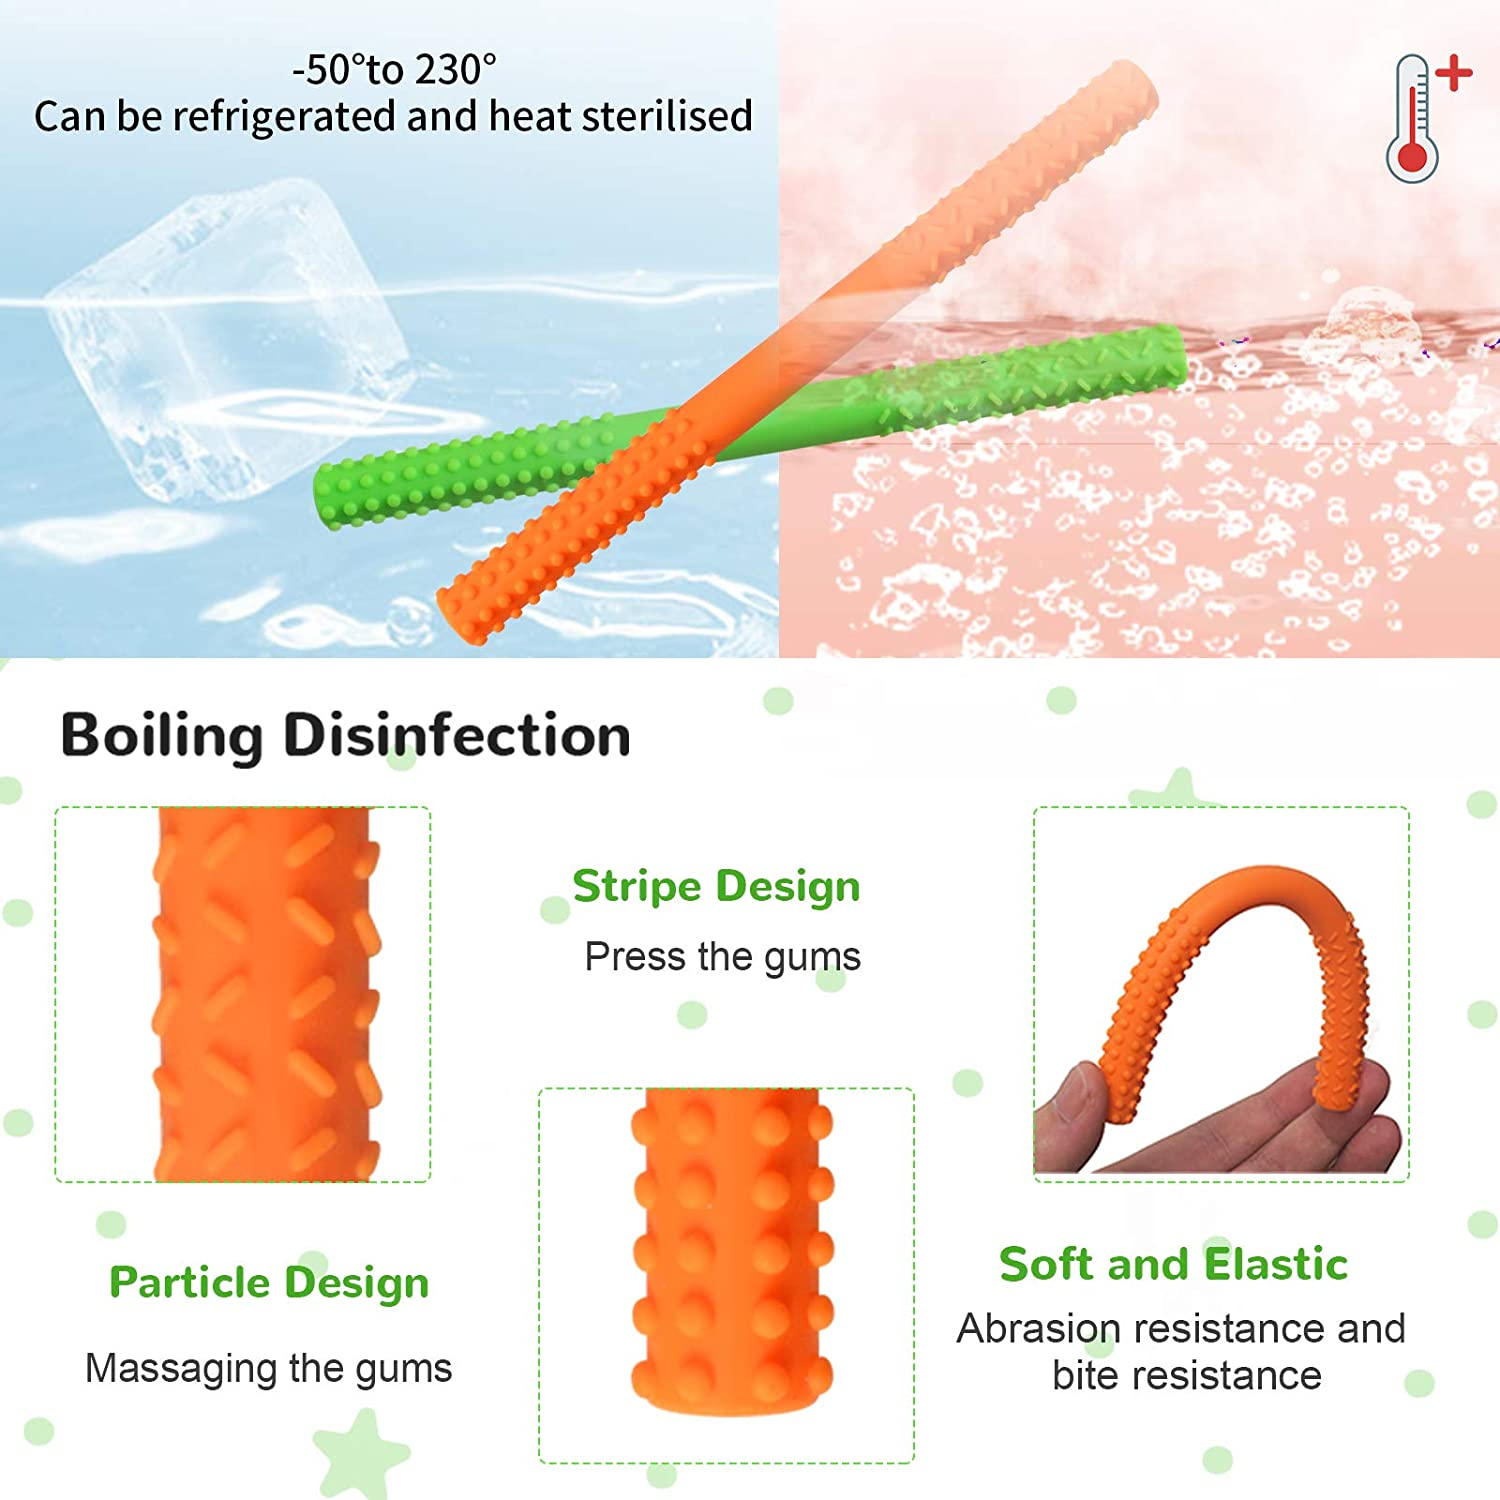 6.9 Long Hollow Teething Tubes Four Color Silicone Stick Shape Teether Straw Toys with a Cleaning Brush for Sensory Exploration and Tooth Relief Soft Silicone Teething Toys for Babies 0-12 Months